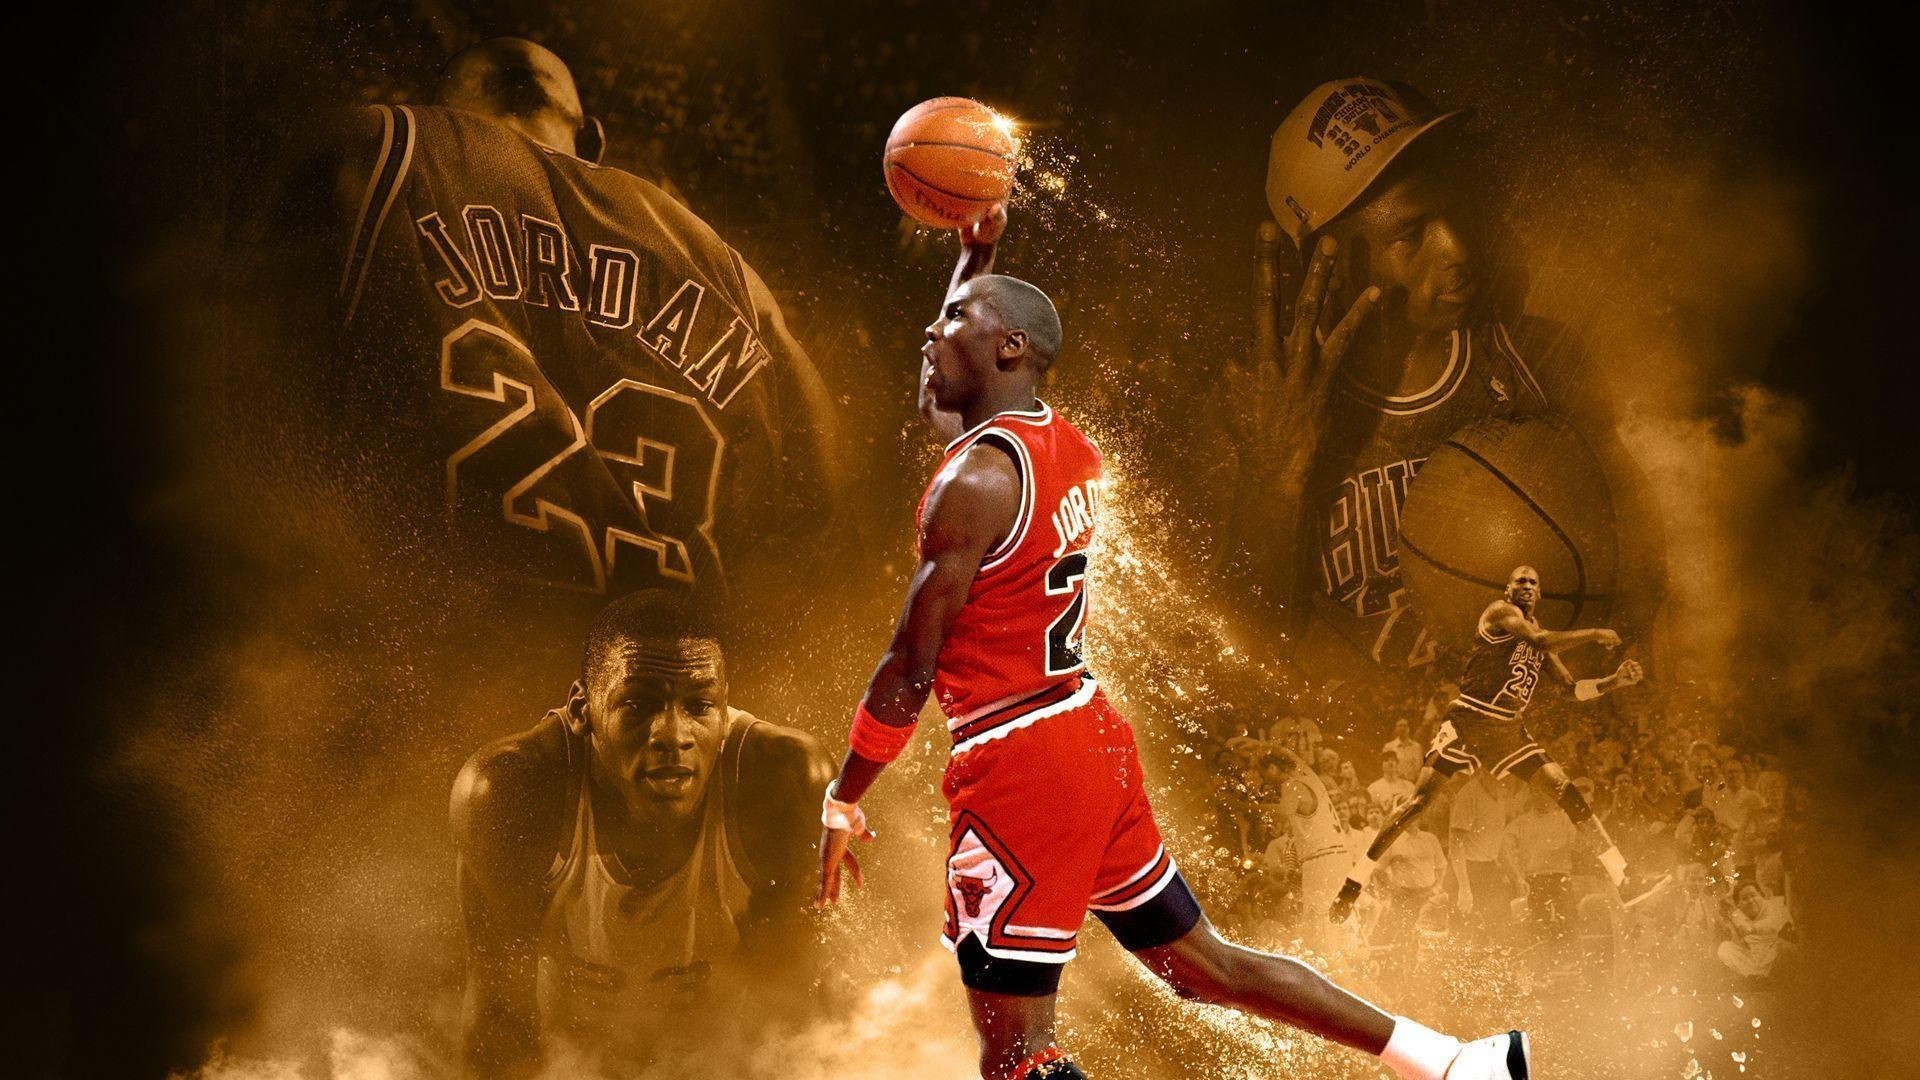 NBA Basketball Wallpaper 2018 (63+ Images